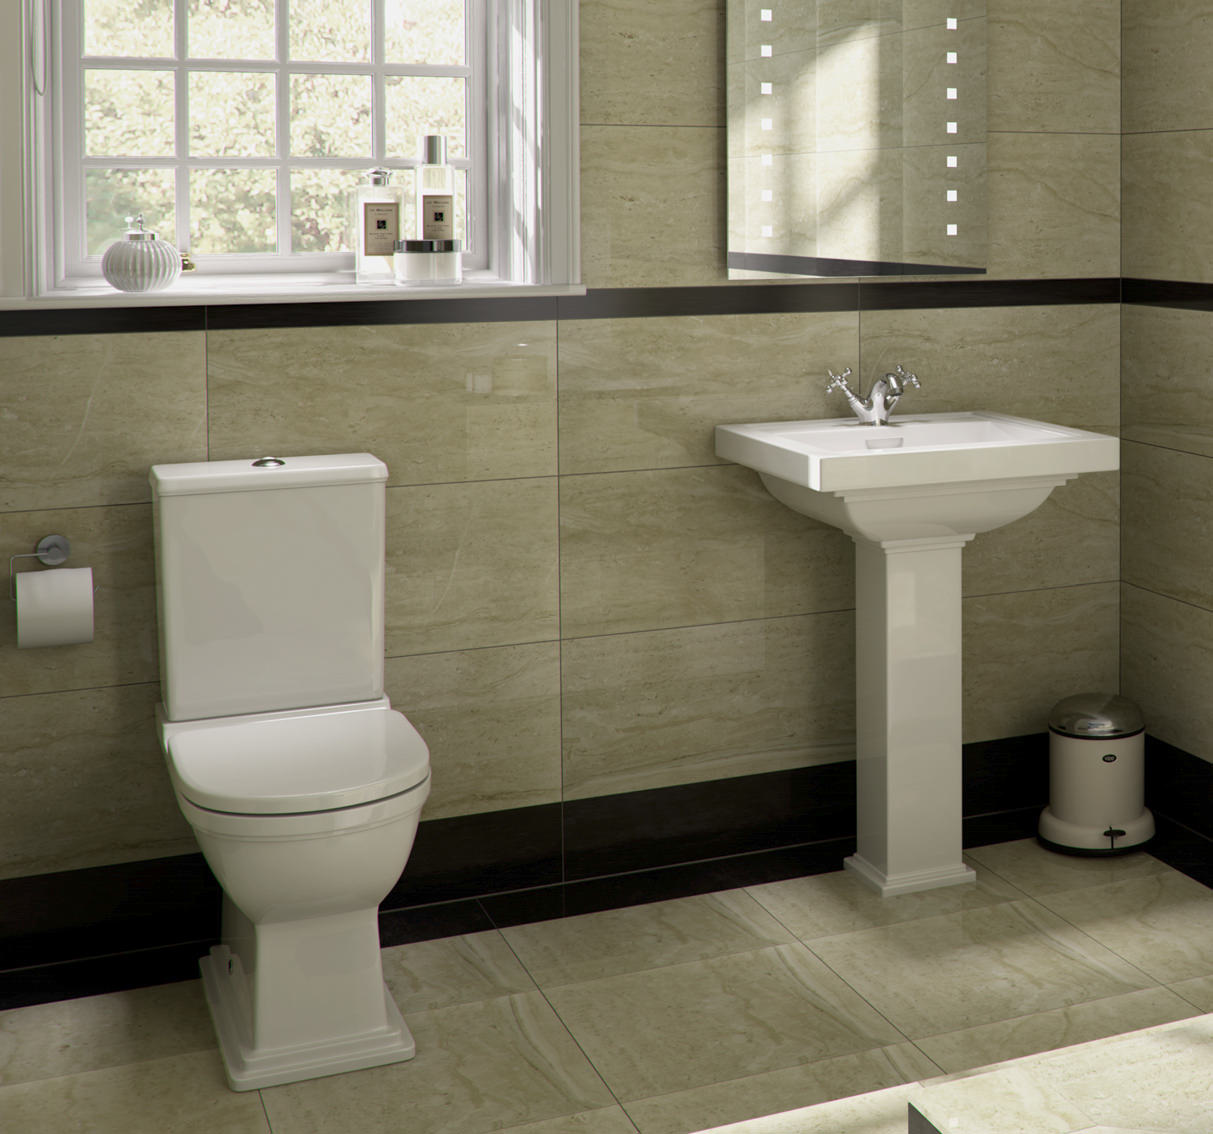 Rak empire 1 tap hole basin with full pedestal 600mm Empire bathrooms